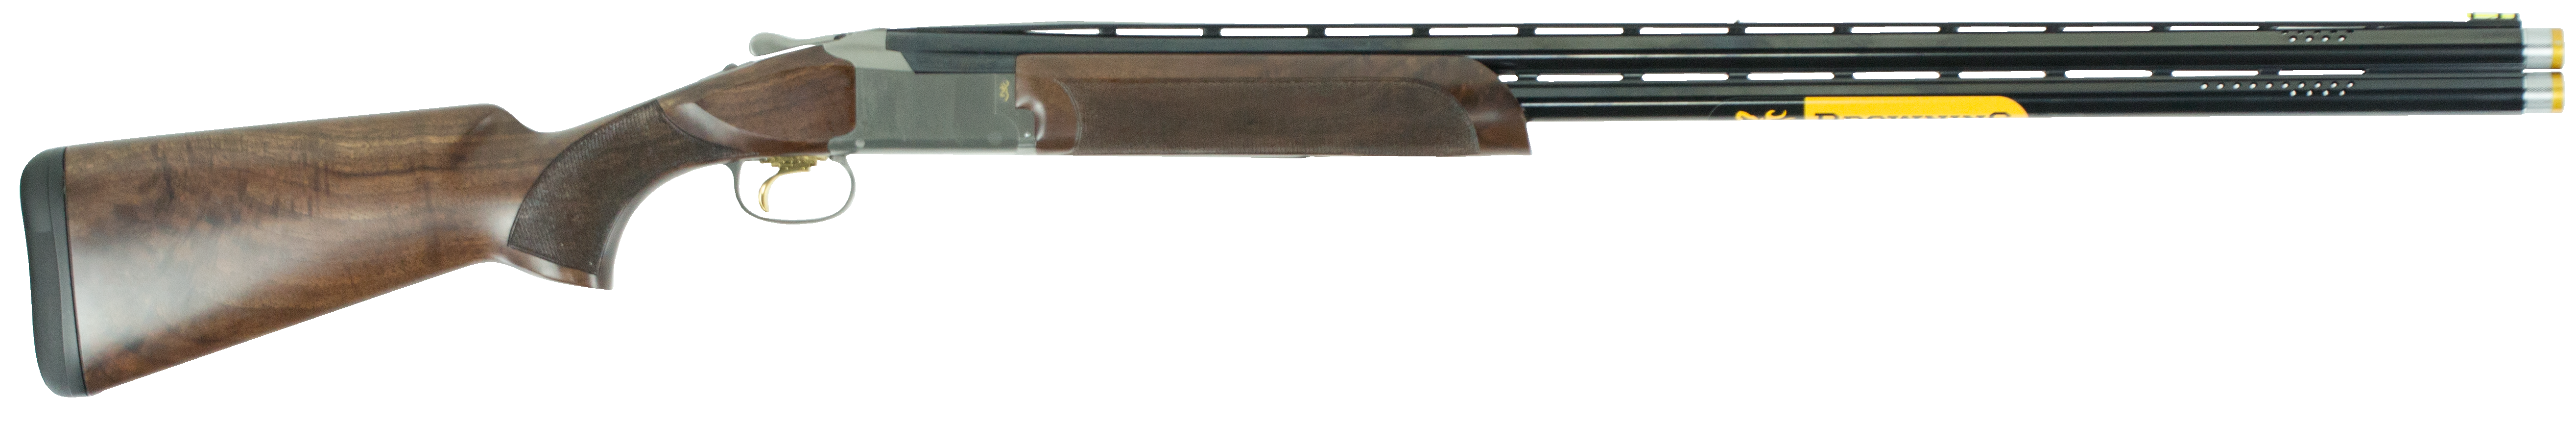 Browning Citori 725 Sporting Over/Under Shotgun 3'' 12 Gauge 30'' Silver Nitride Steel/Blued Barrel - Grade III Gloss/Grade IV Walnut